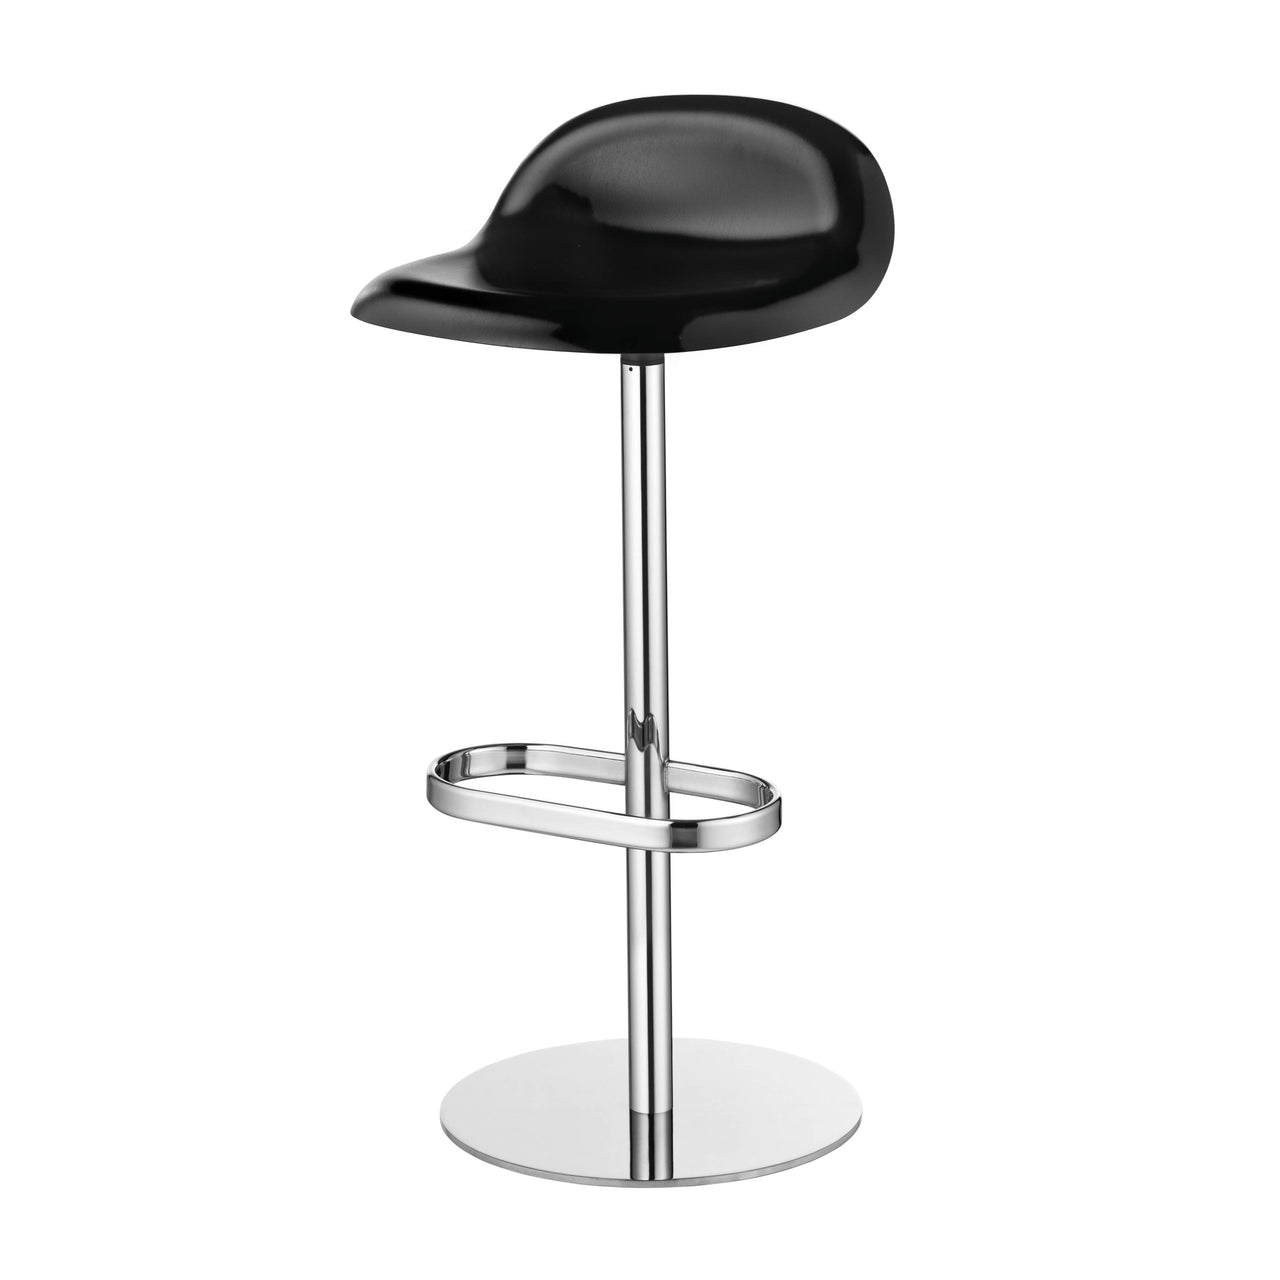 3D Bar Stool: Swivel Base + Black Stained Beech